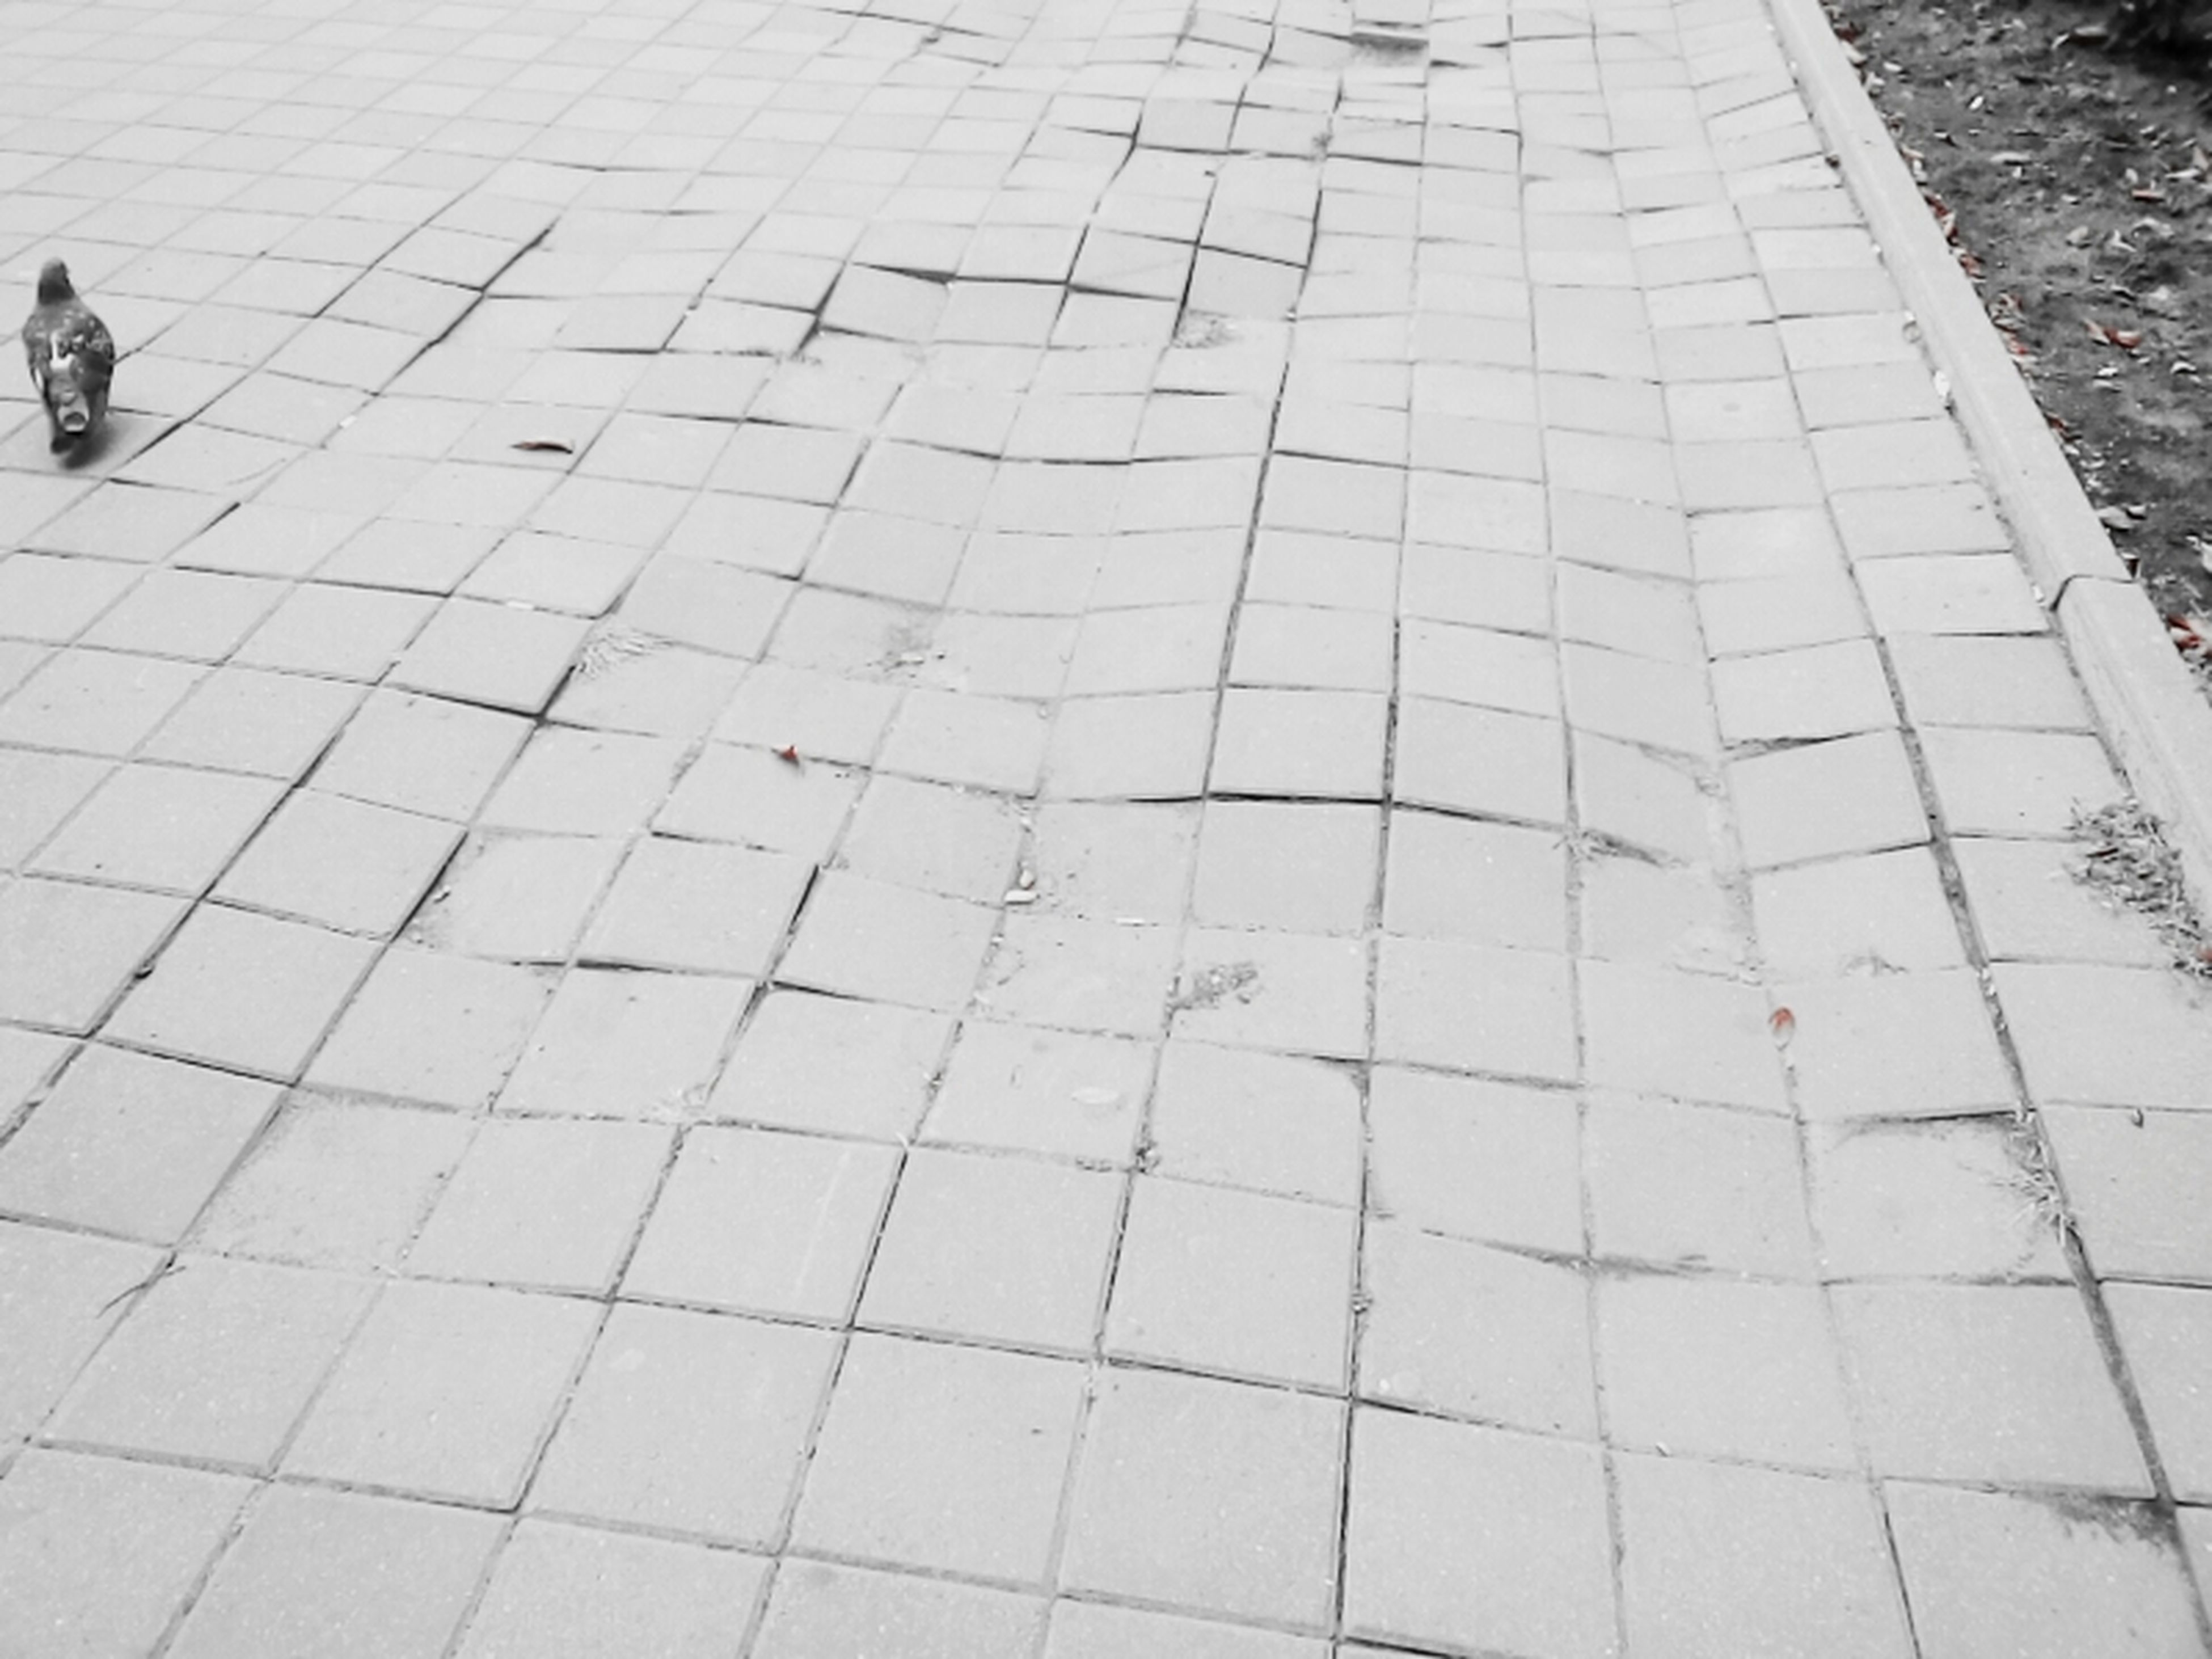 paving stone, day, footpath, stone material, outdoors, the way forward, geometric shape